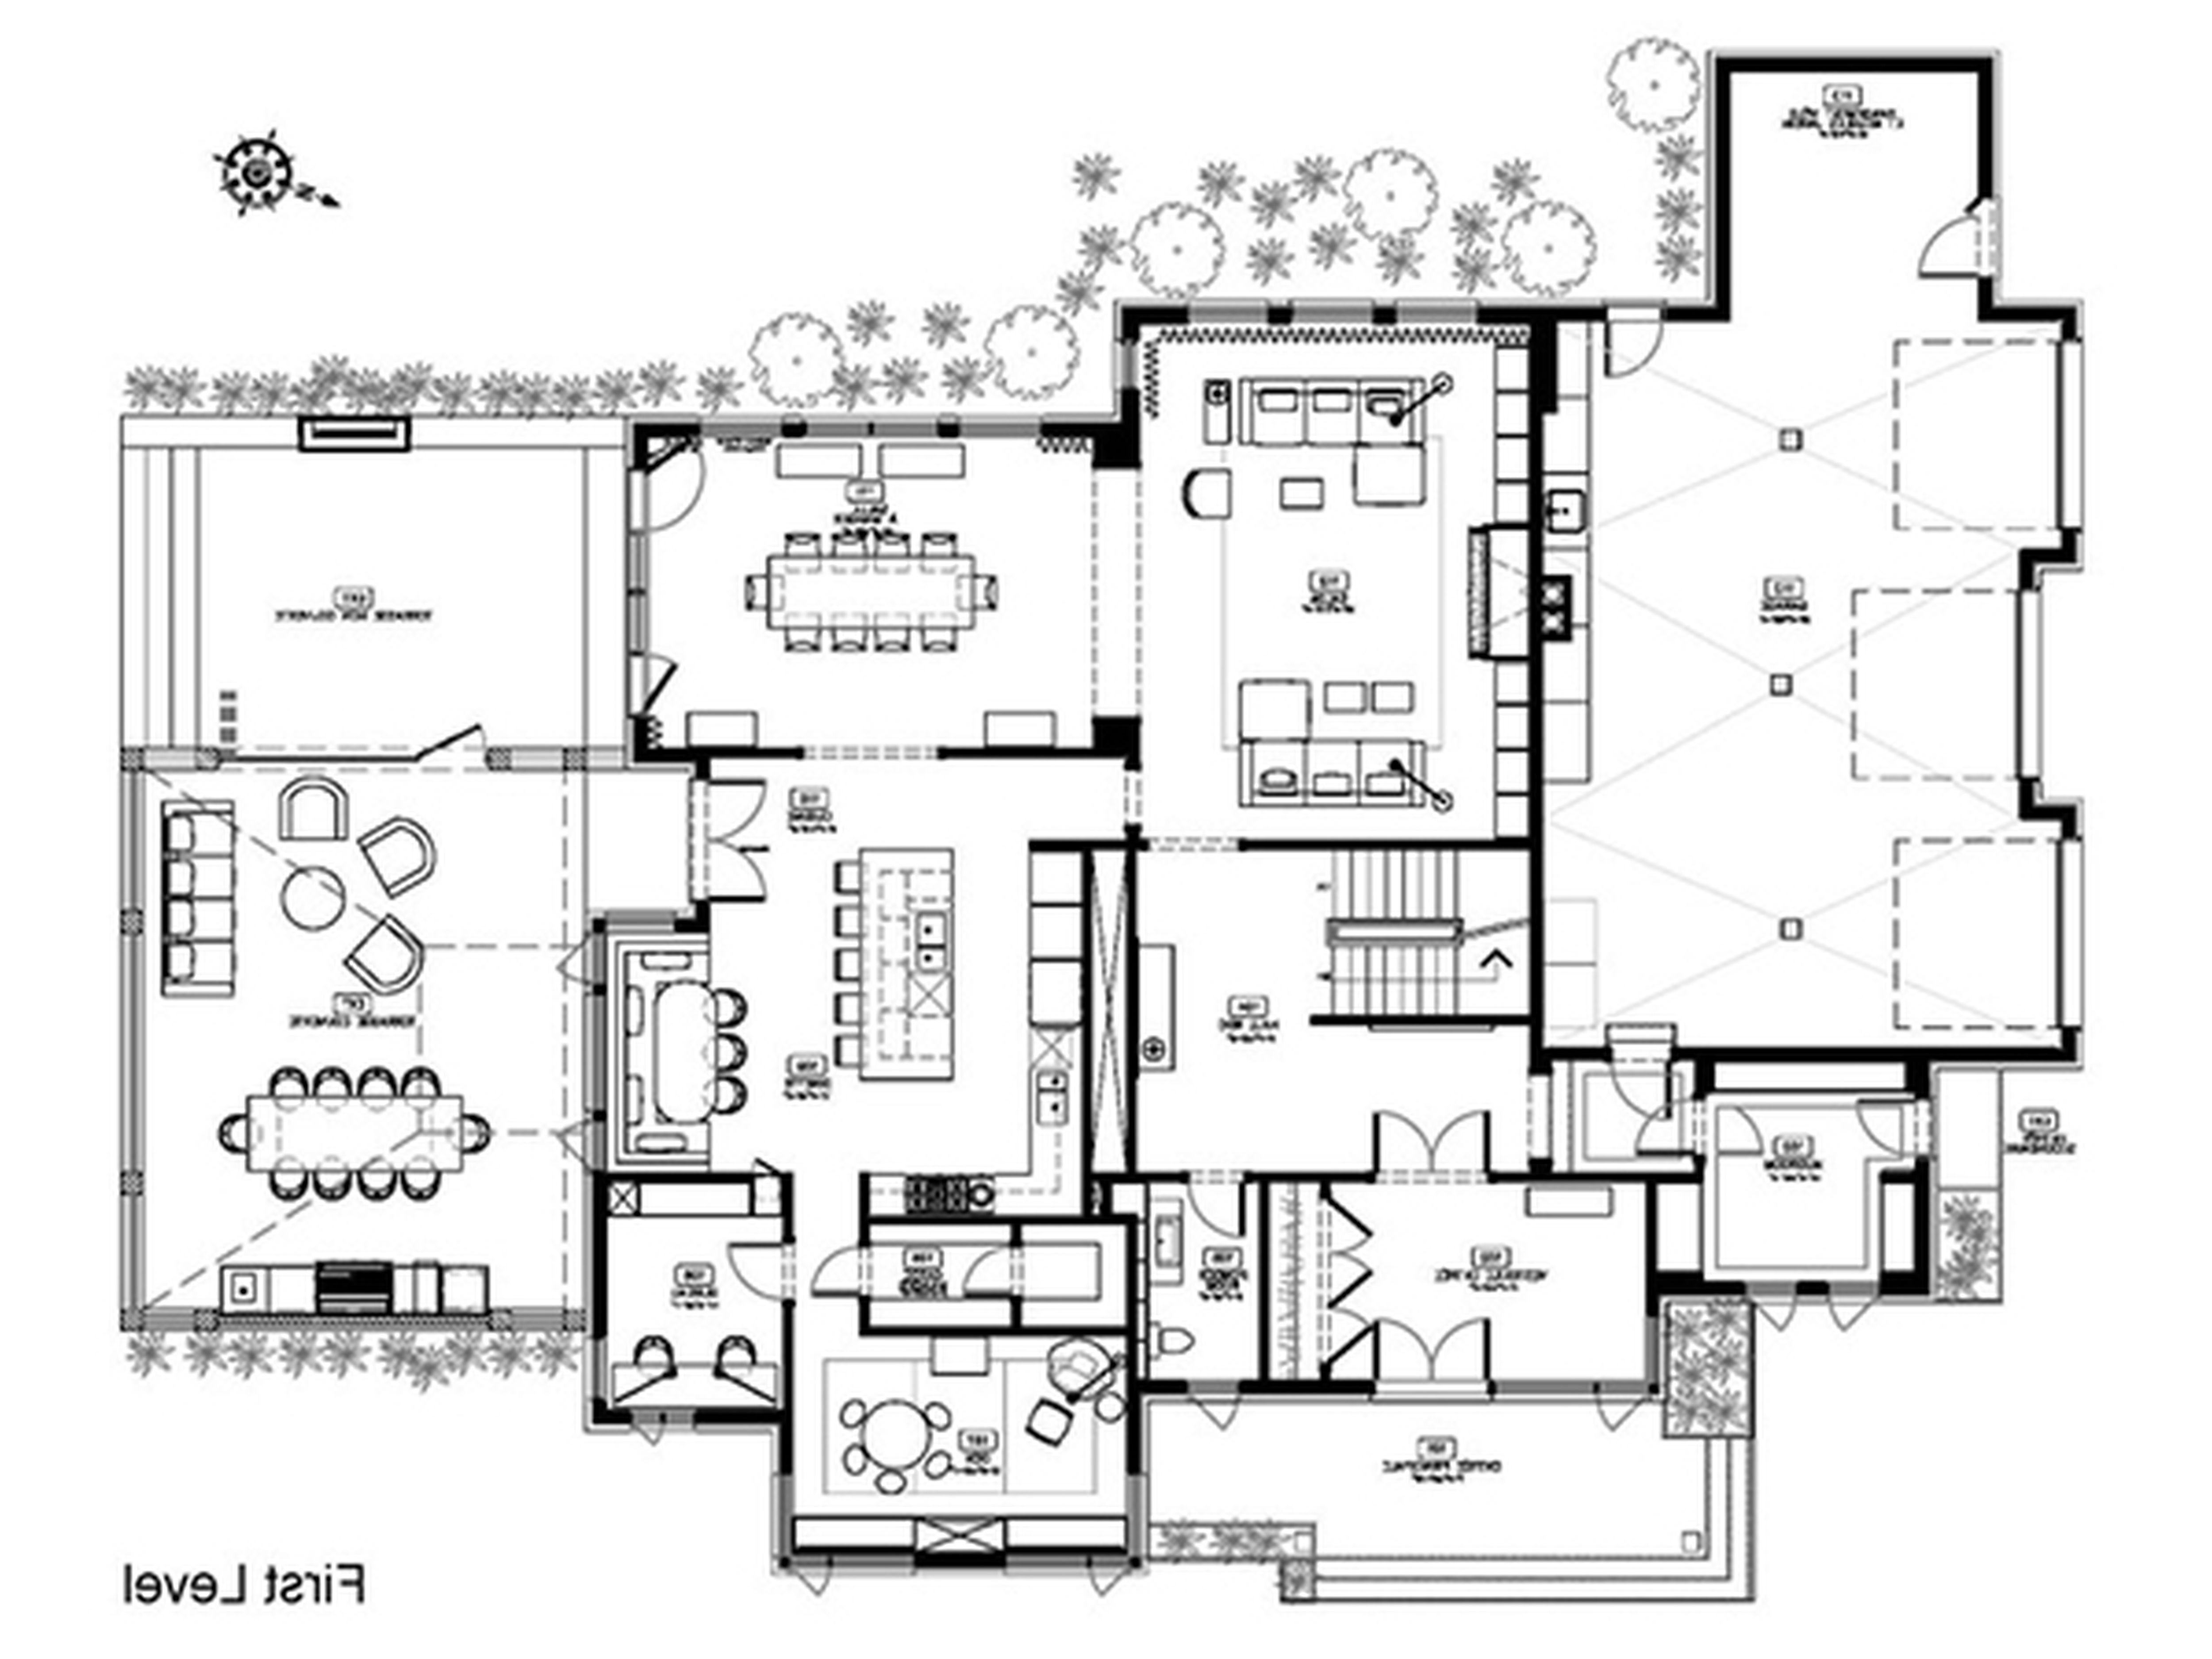 Stunning Arabic House Plans Architecturearts. architect ... architectural house plans and designs